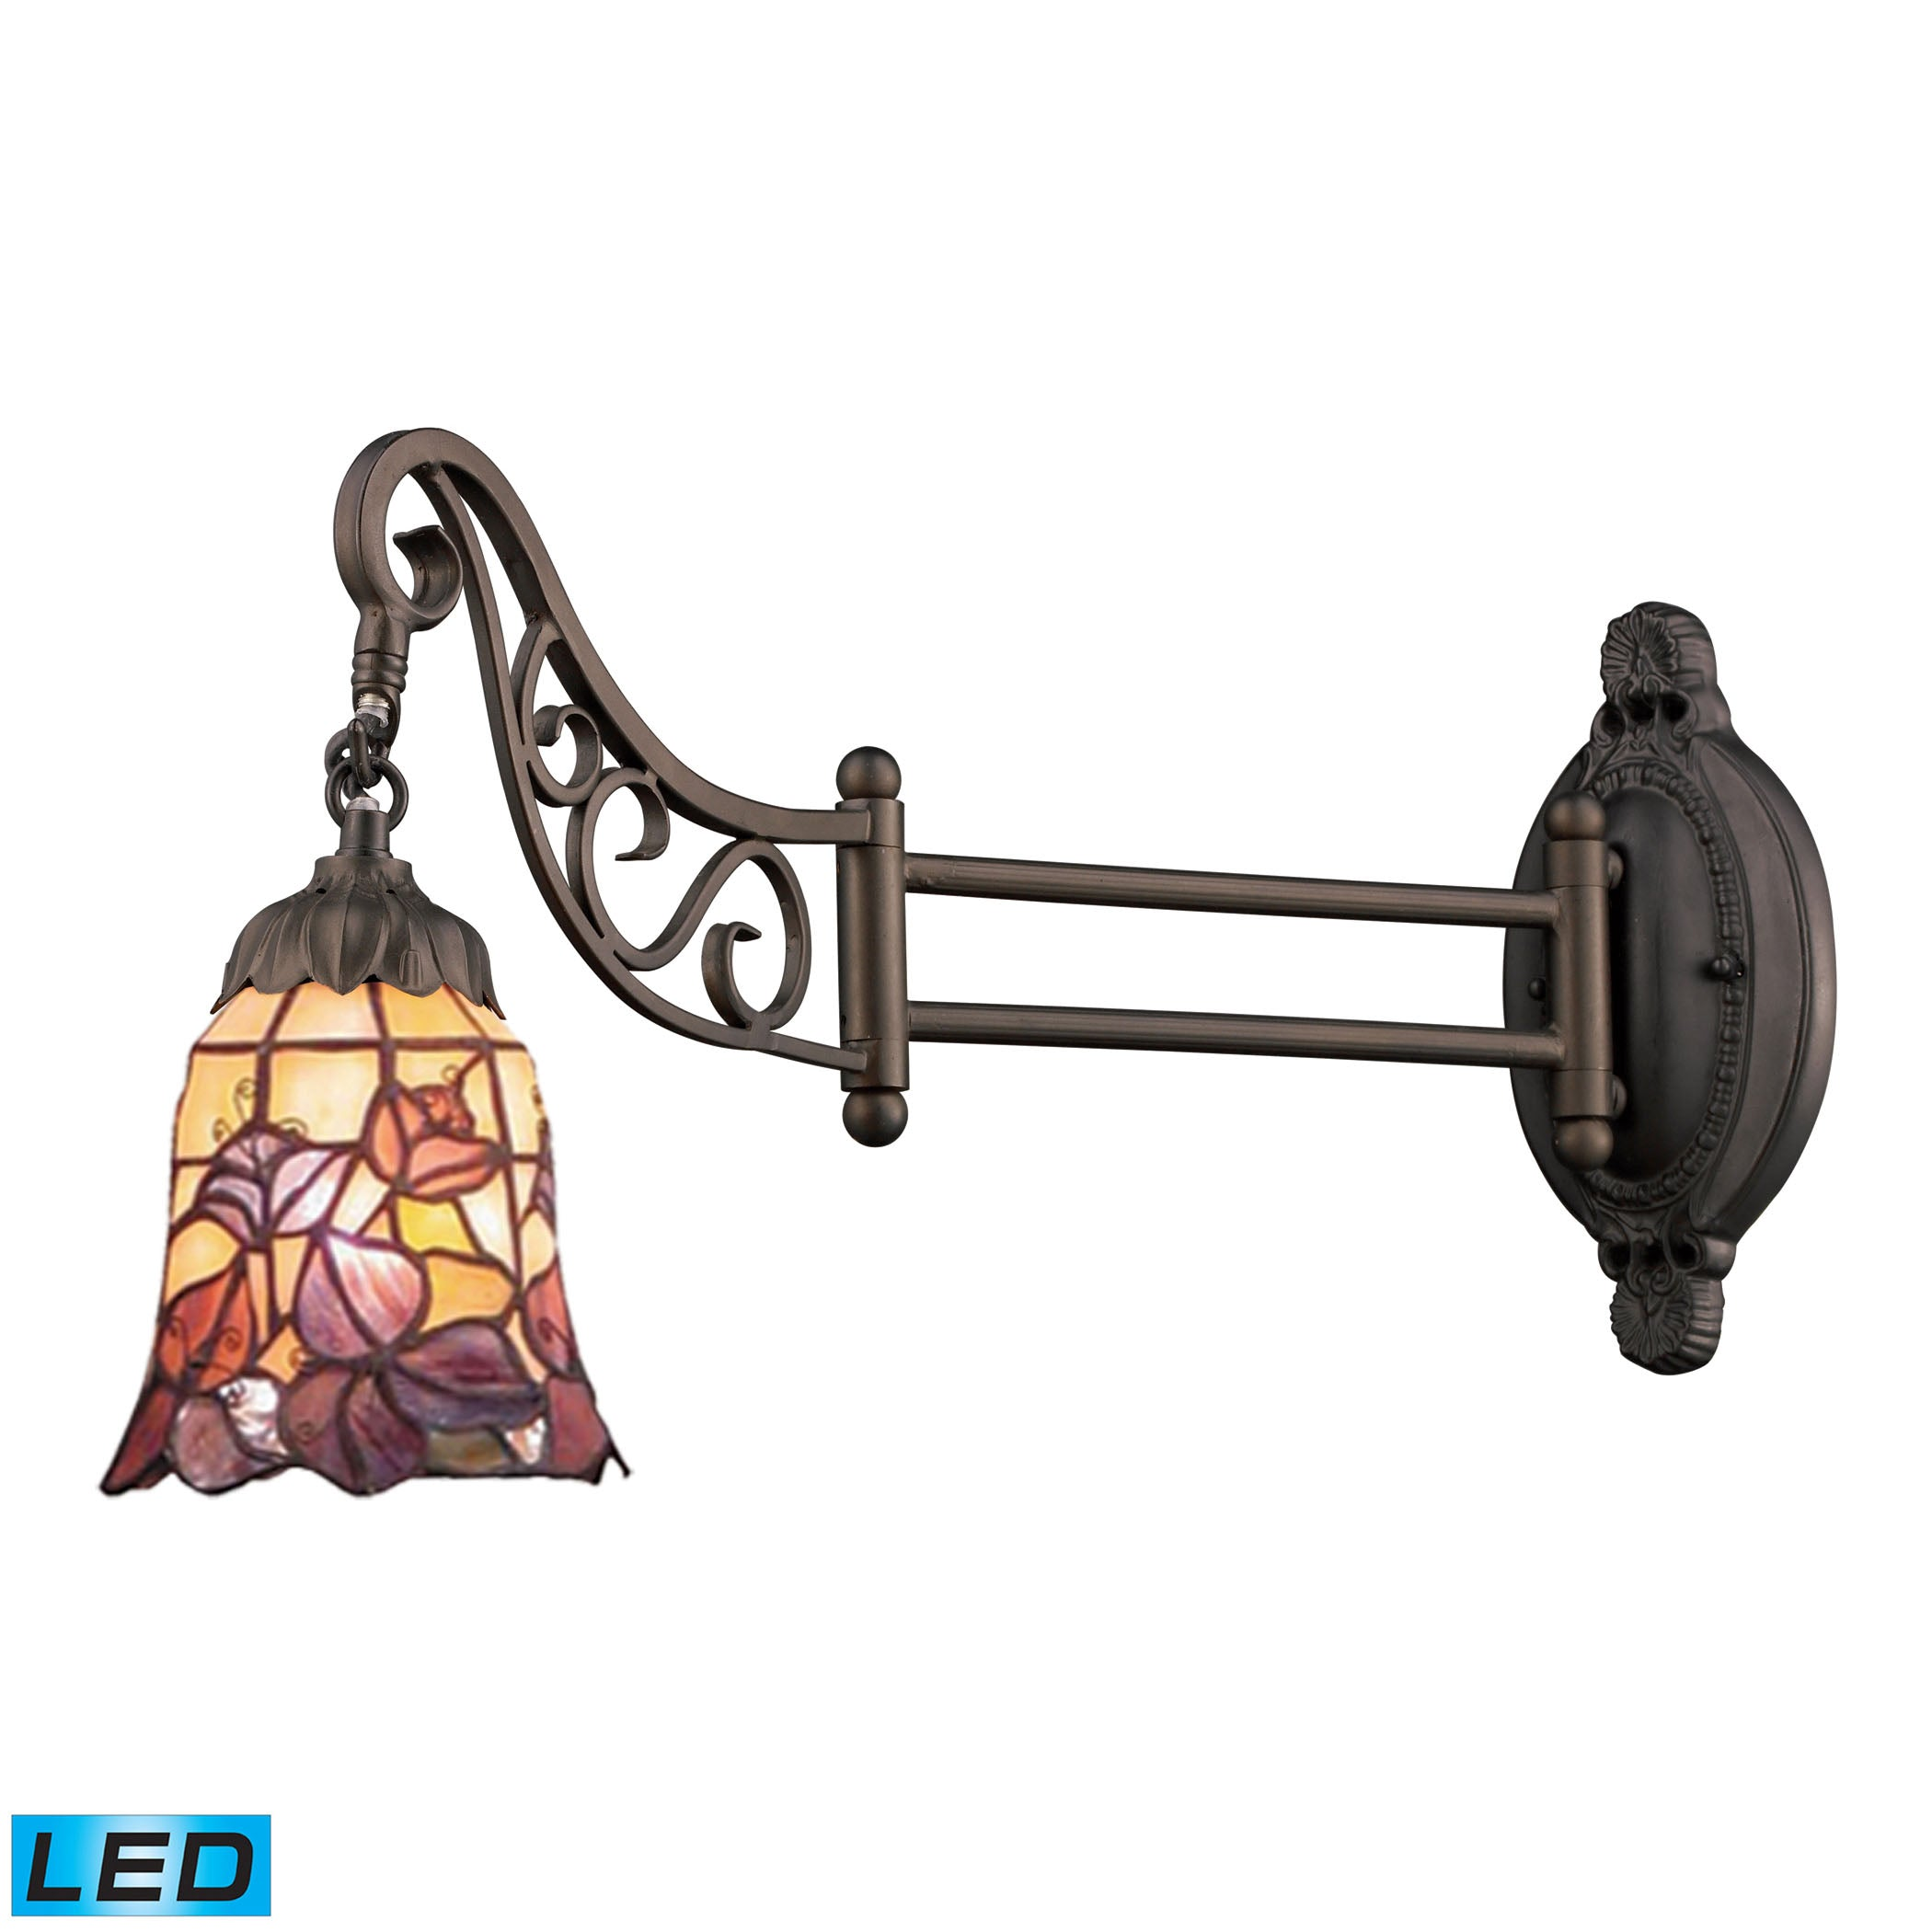 ELK Lighting  Mix-N-Match 1-Light Swingarm Sconce in Tiffany Bronze - LED Offering Up To 800 Lumens (60 Watt Equiv